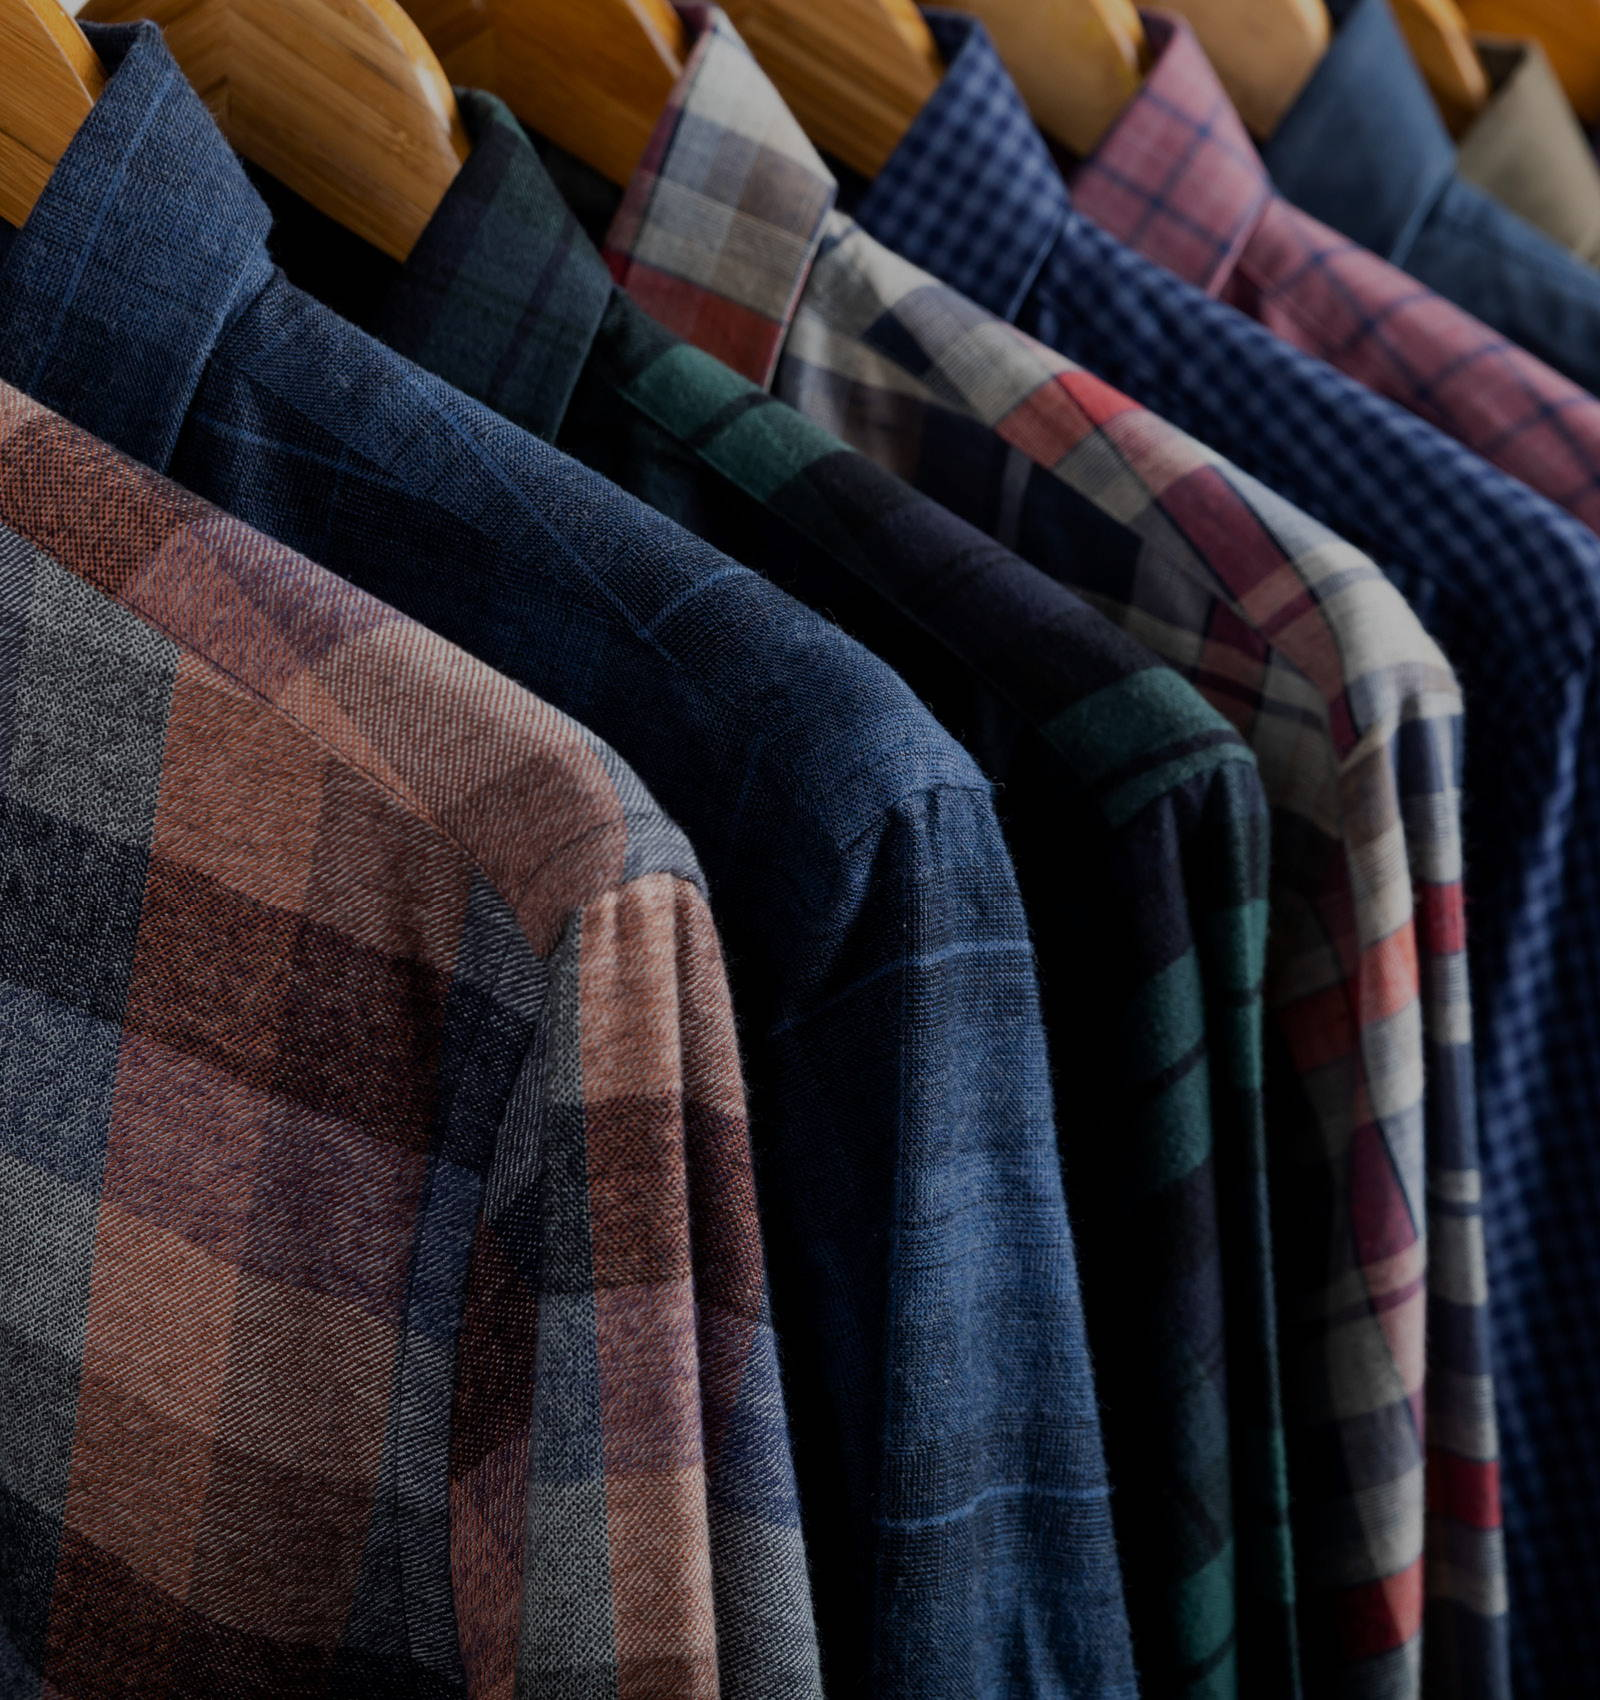 Close up of casual shirts on hangers.